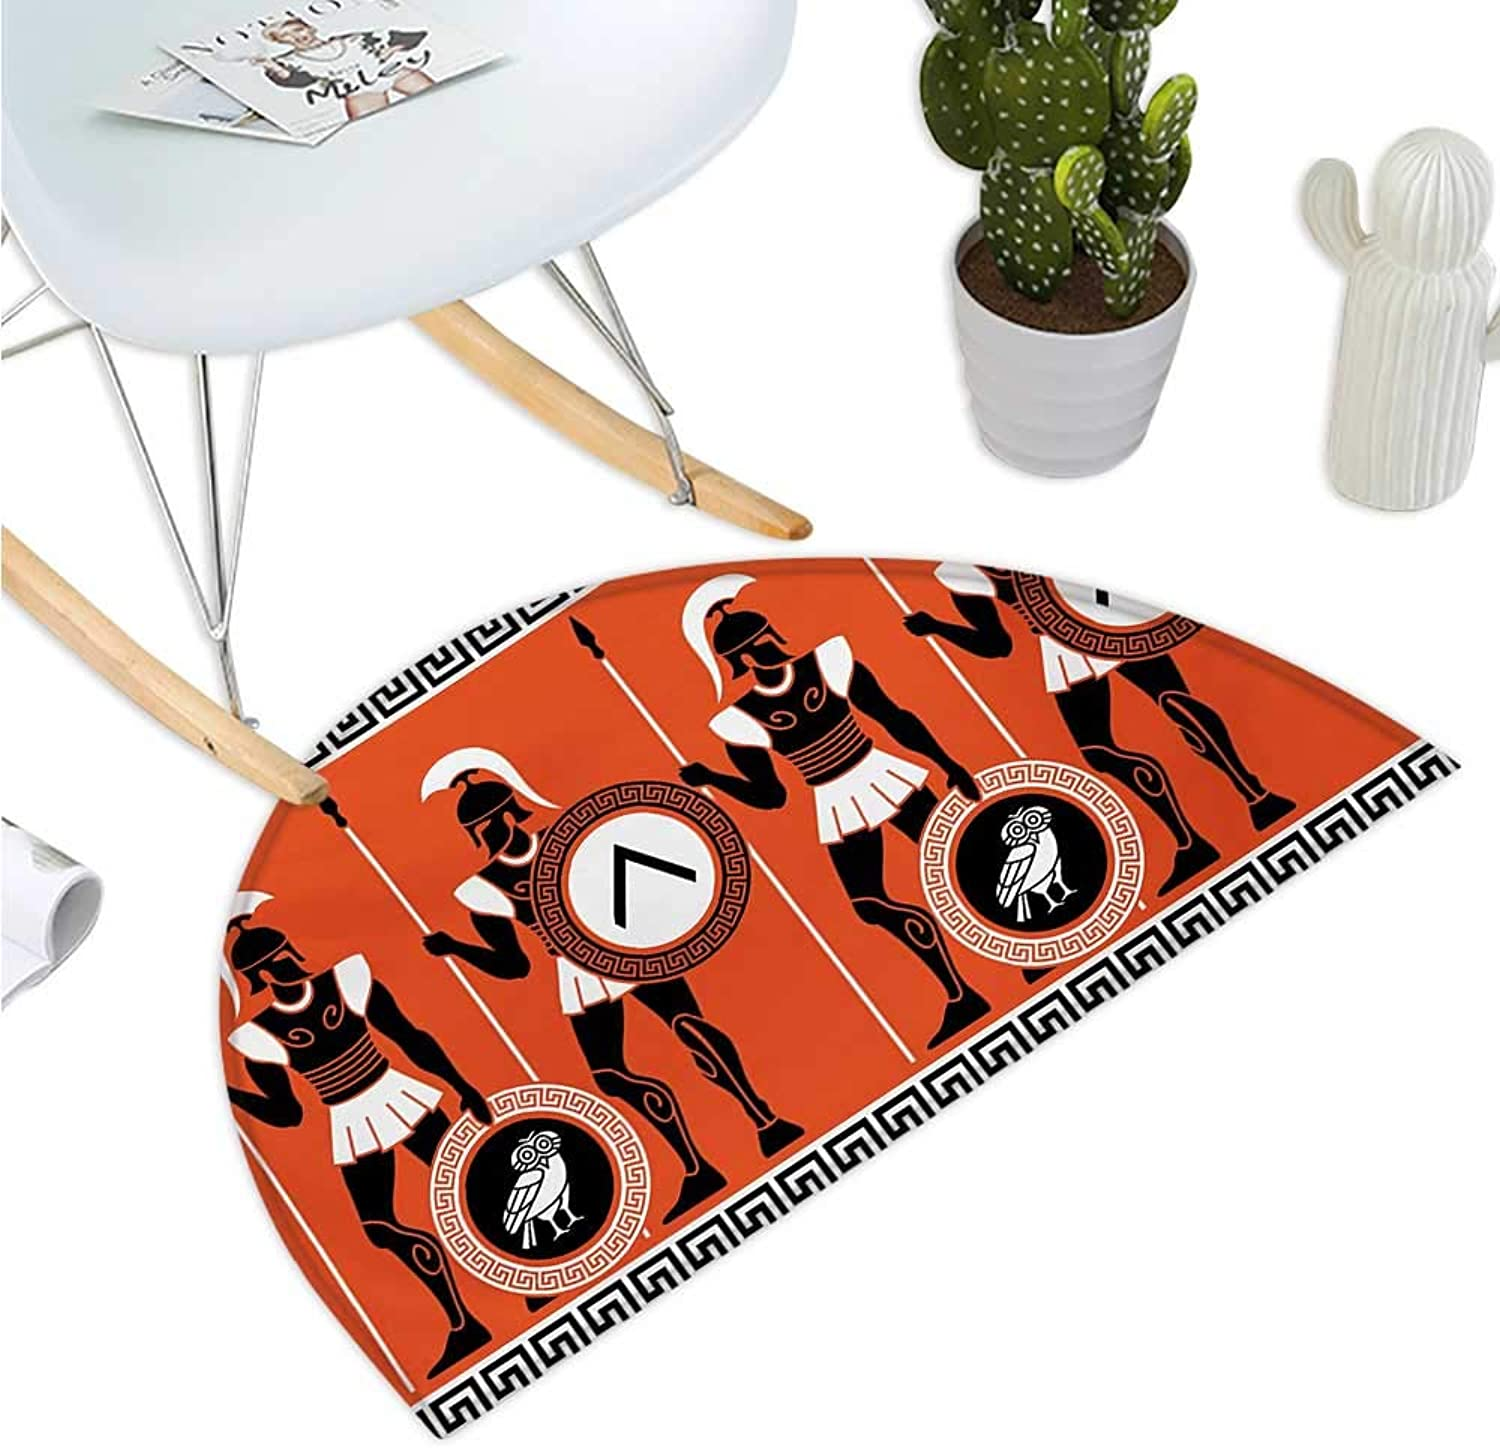 Toga Party Semicircular Cushion Artistic Historical Figures in Ancient Greece Theme Mystical Cultures Entry Door Mat H 47.2  xD 70.8  orange Black White